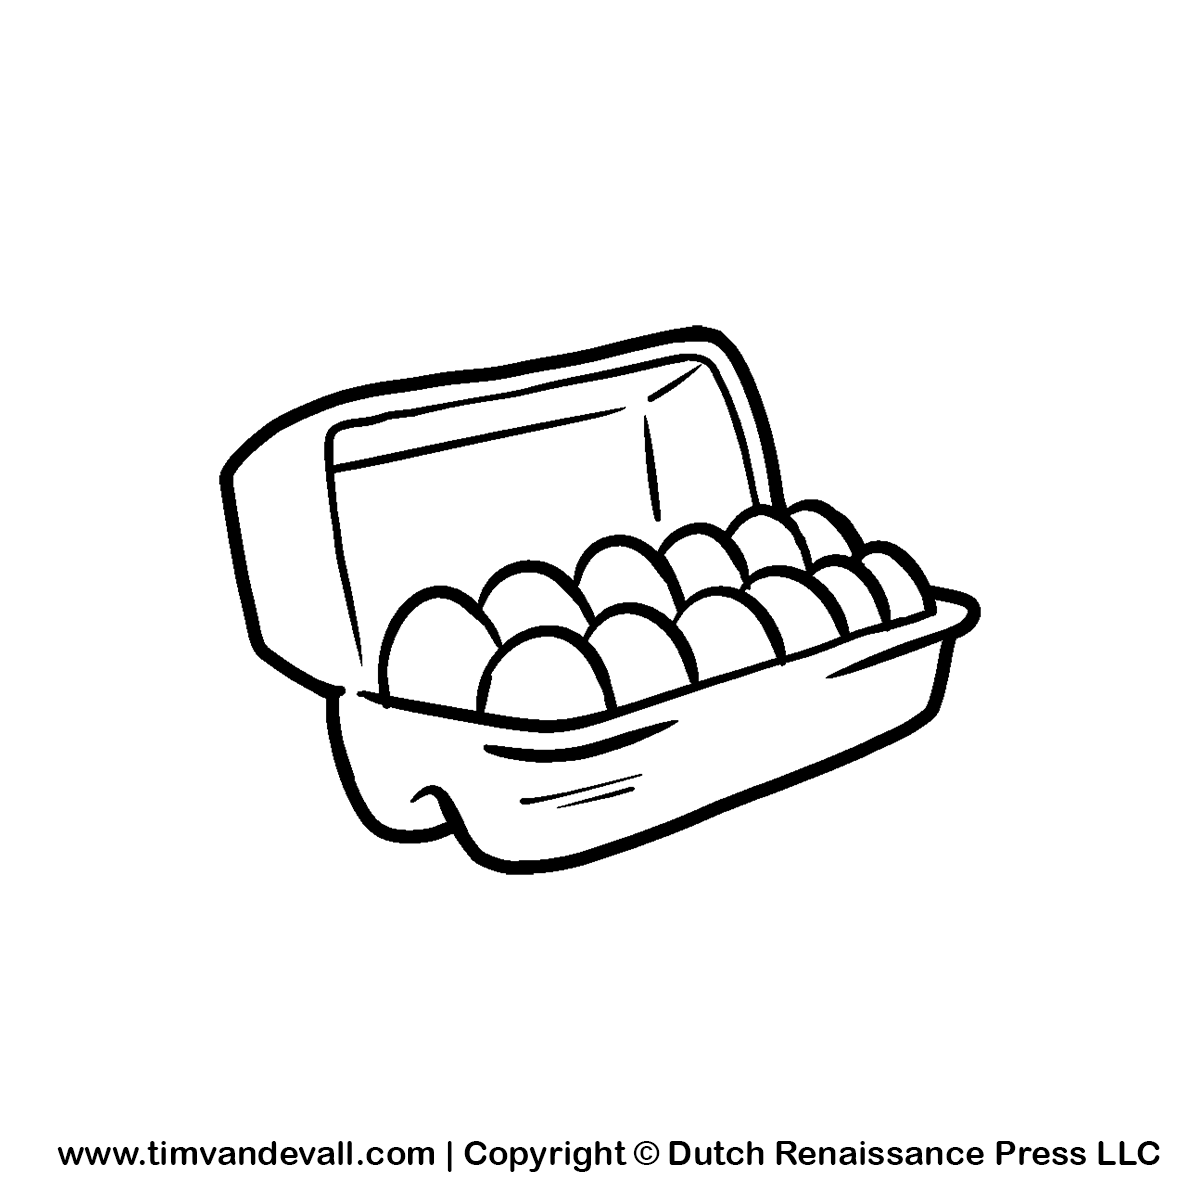 Empty Egg Carton Clipart Black And White | Clipart Panda ...